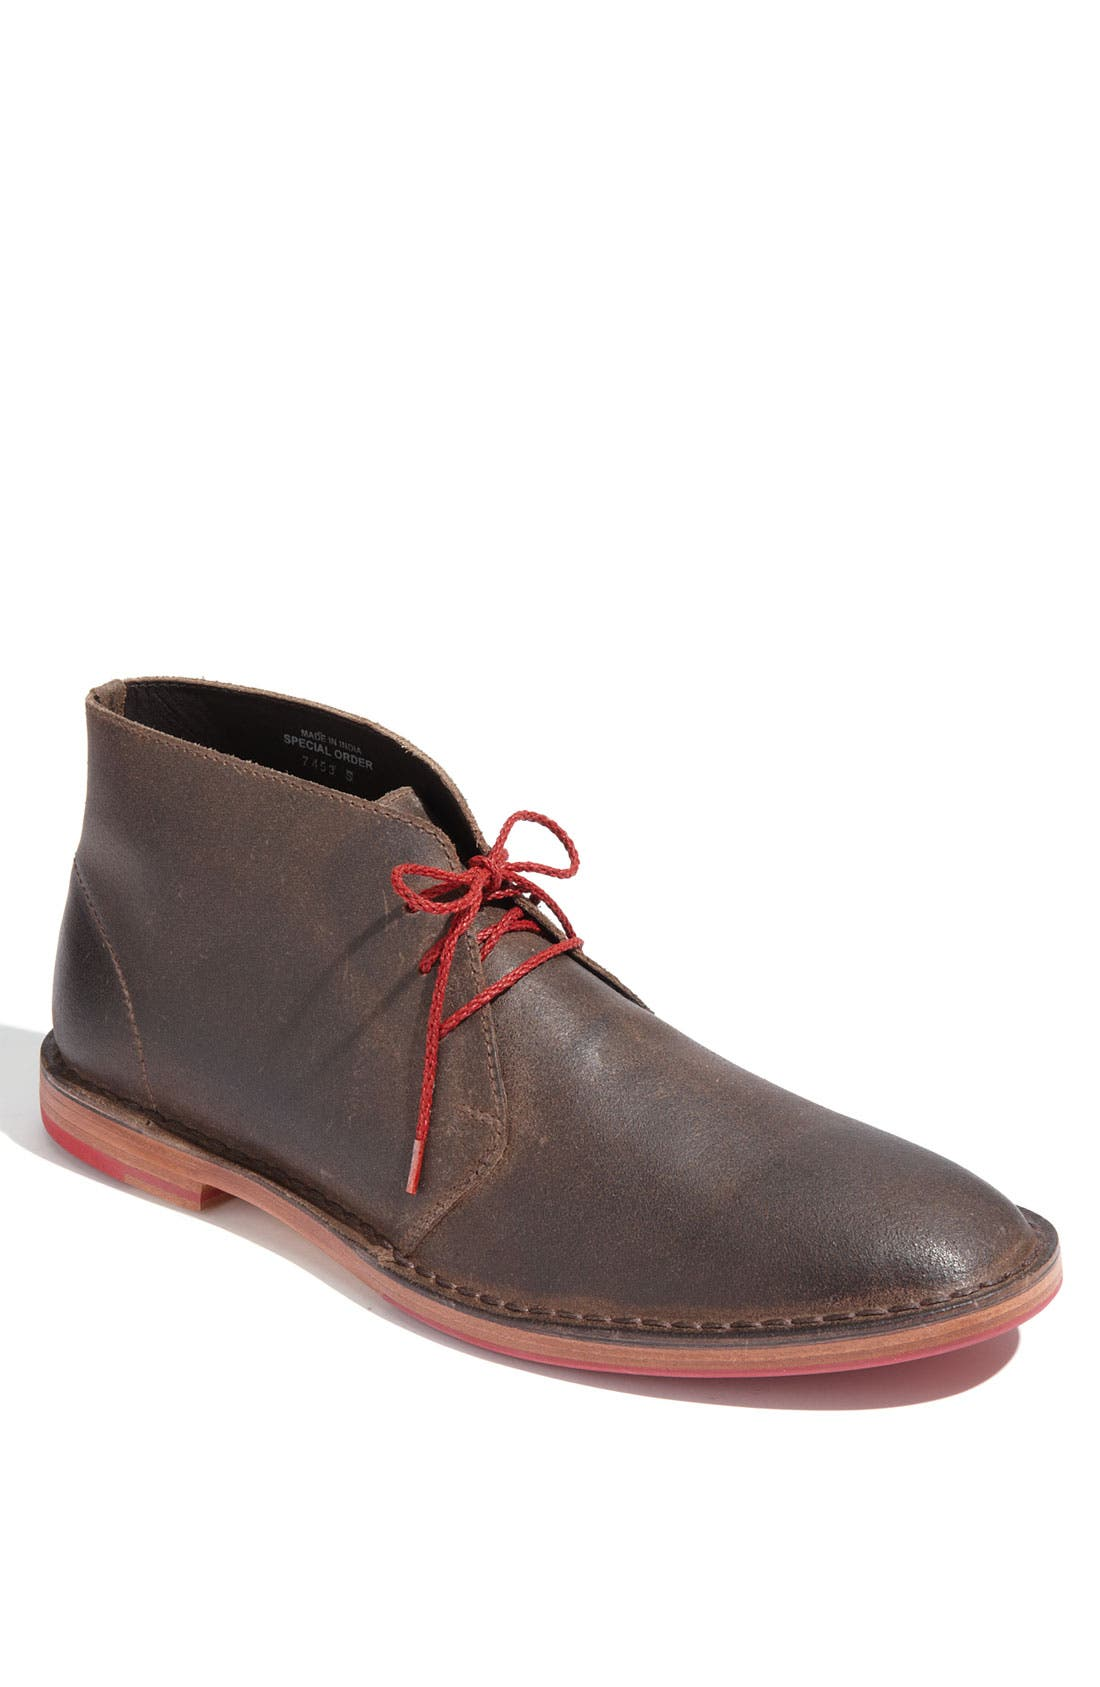 Main Image - Cole Haan 'Paul' Chukka Boot